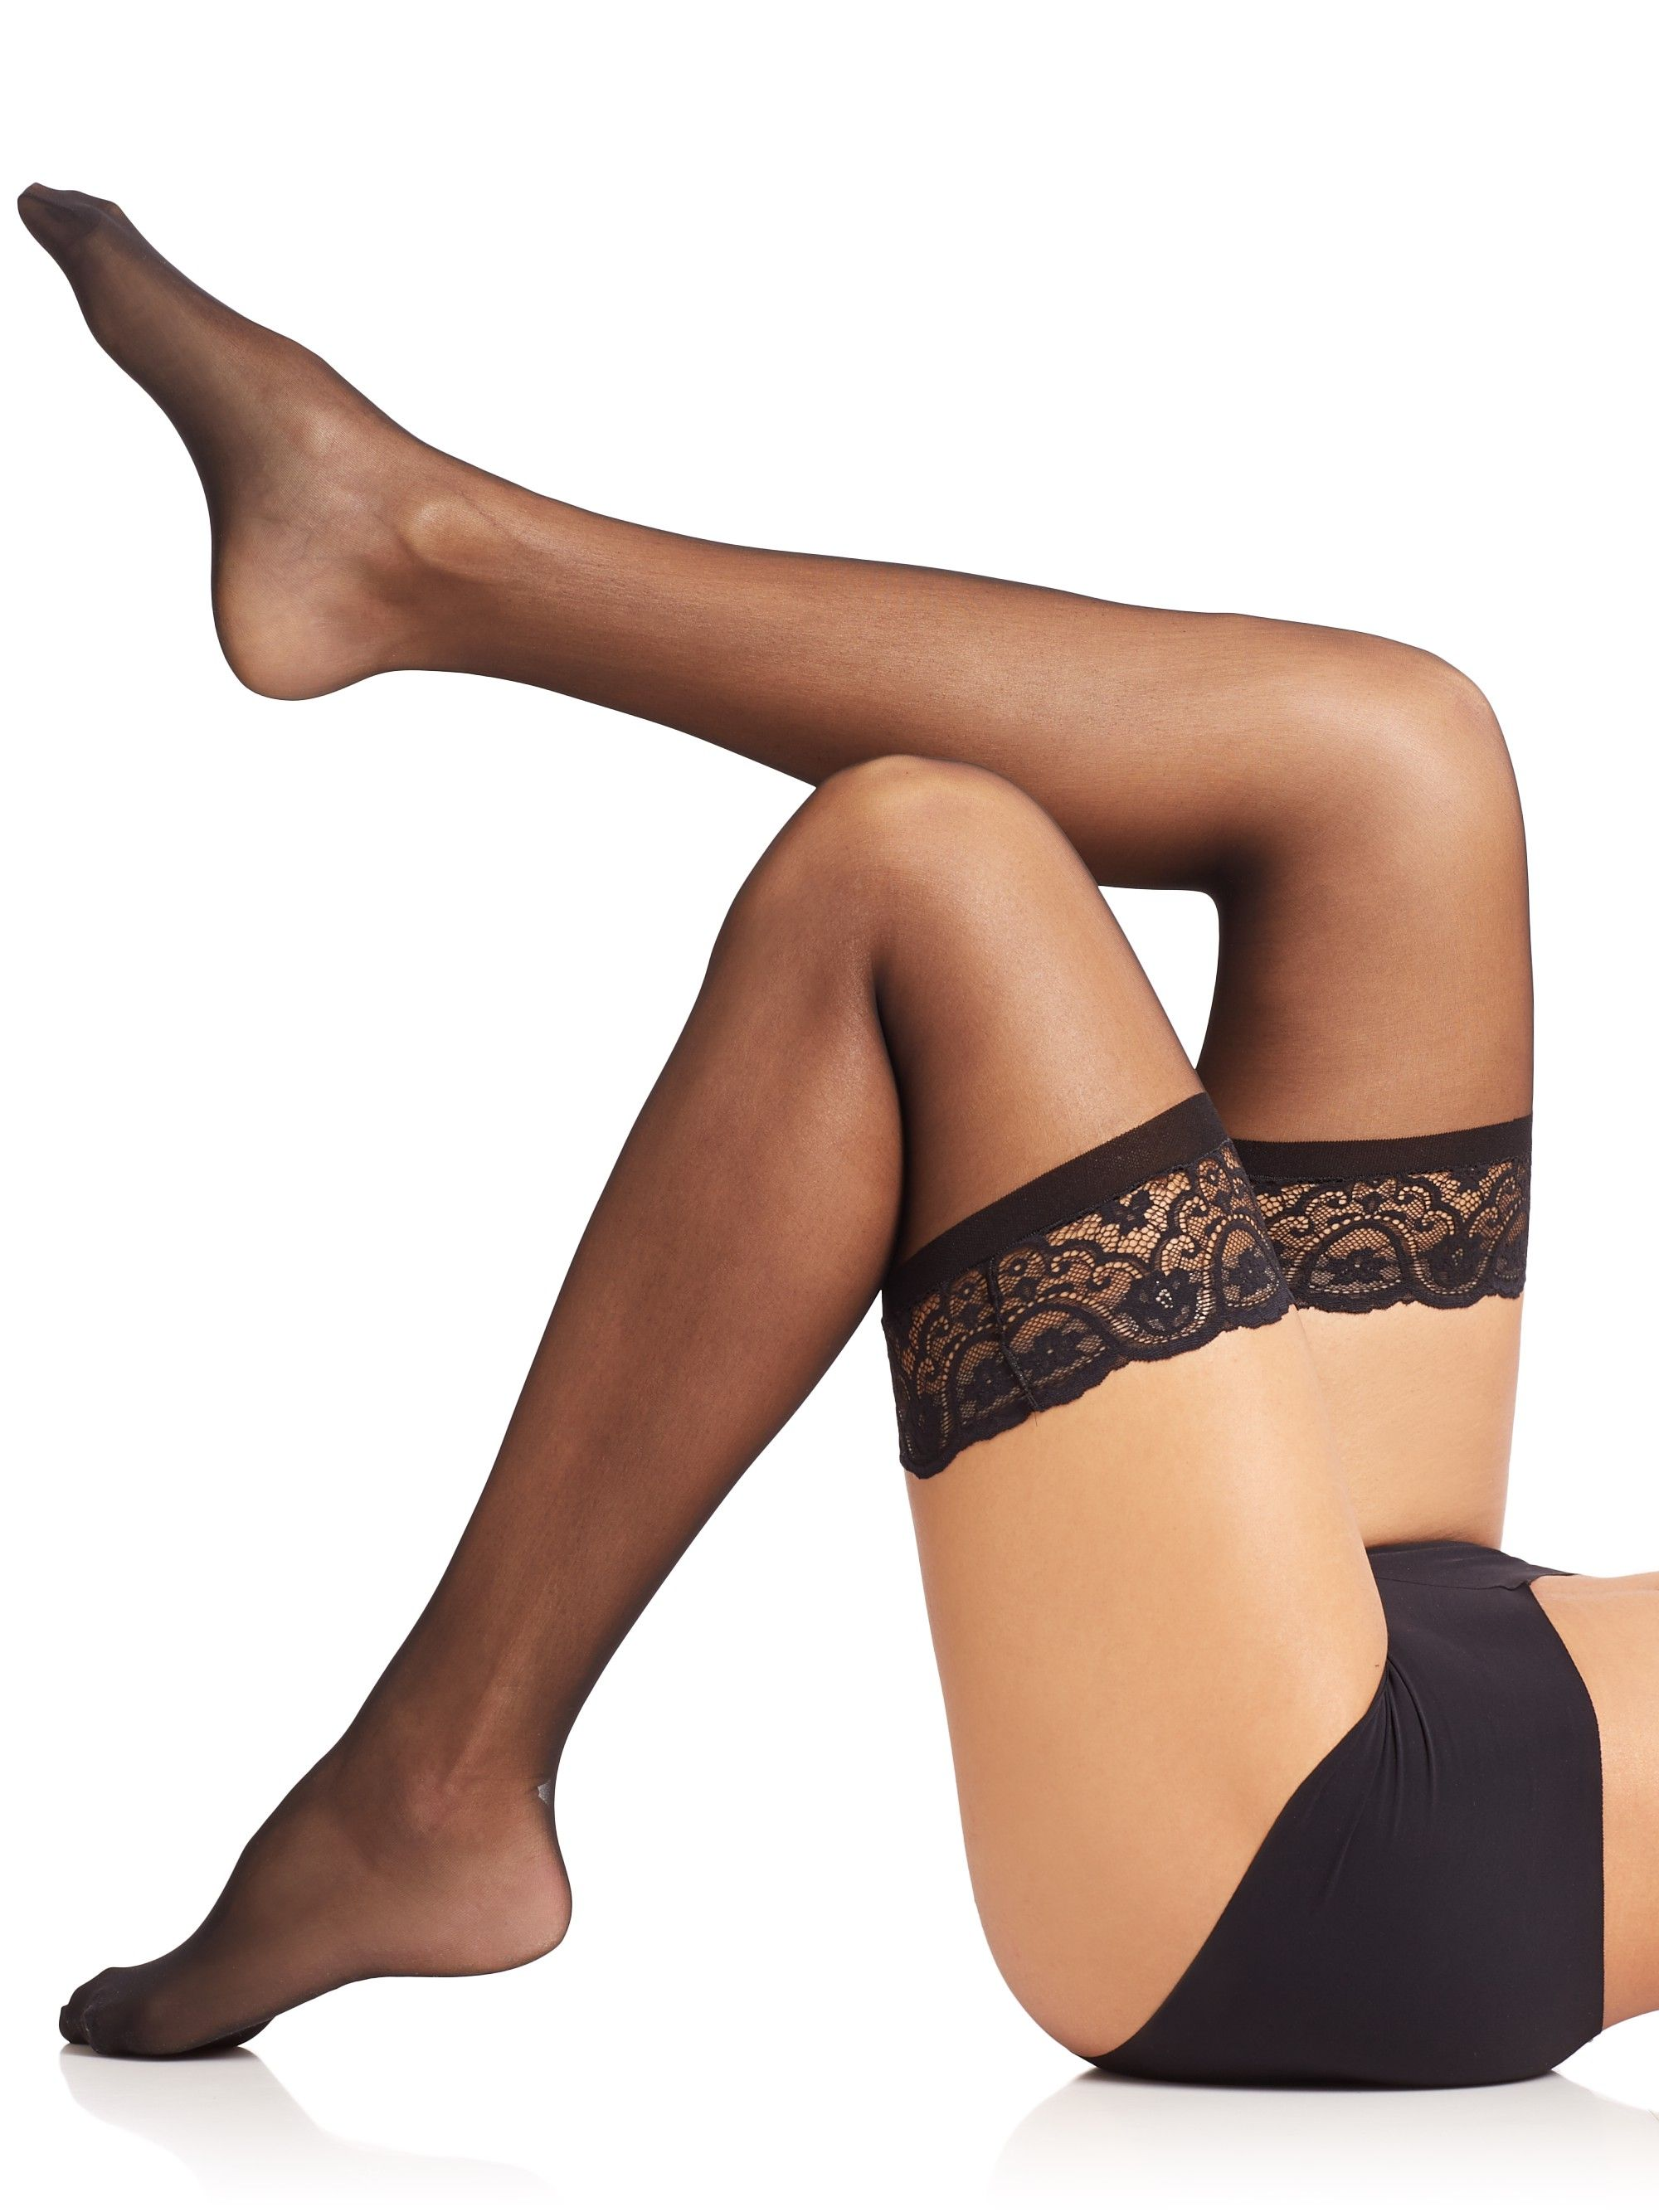 6efeed06ce984 Commando Lace All Night Sexy Thigh Highs - Black Medium/Large in ...